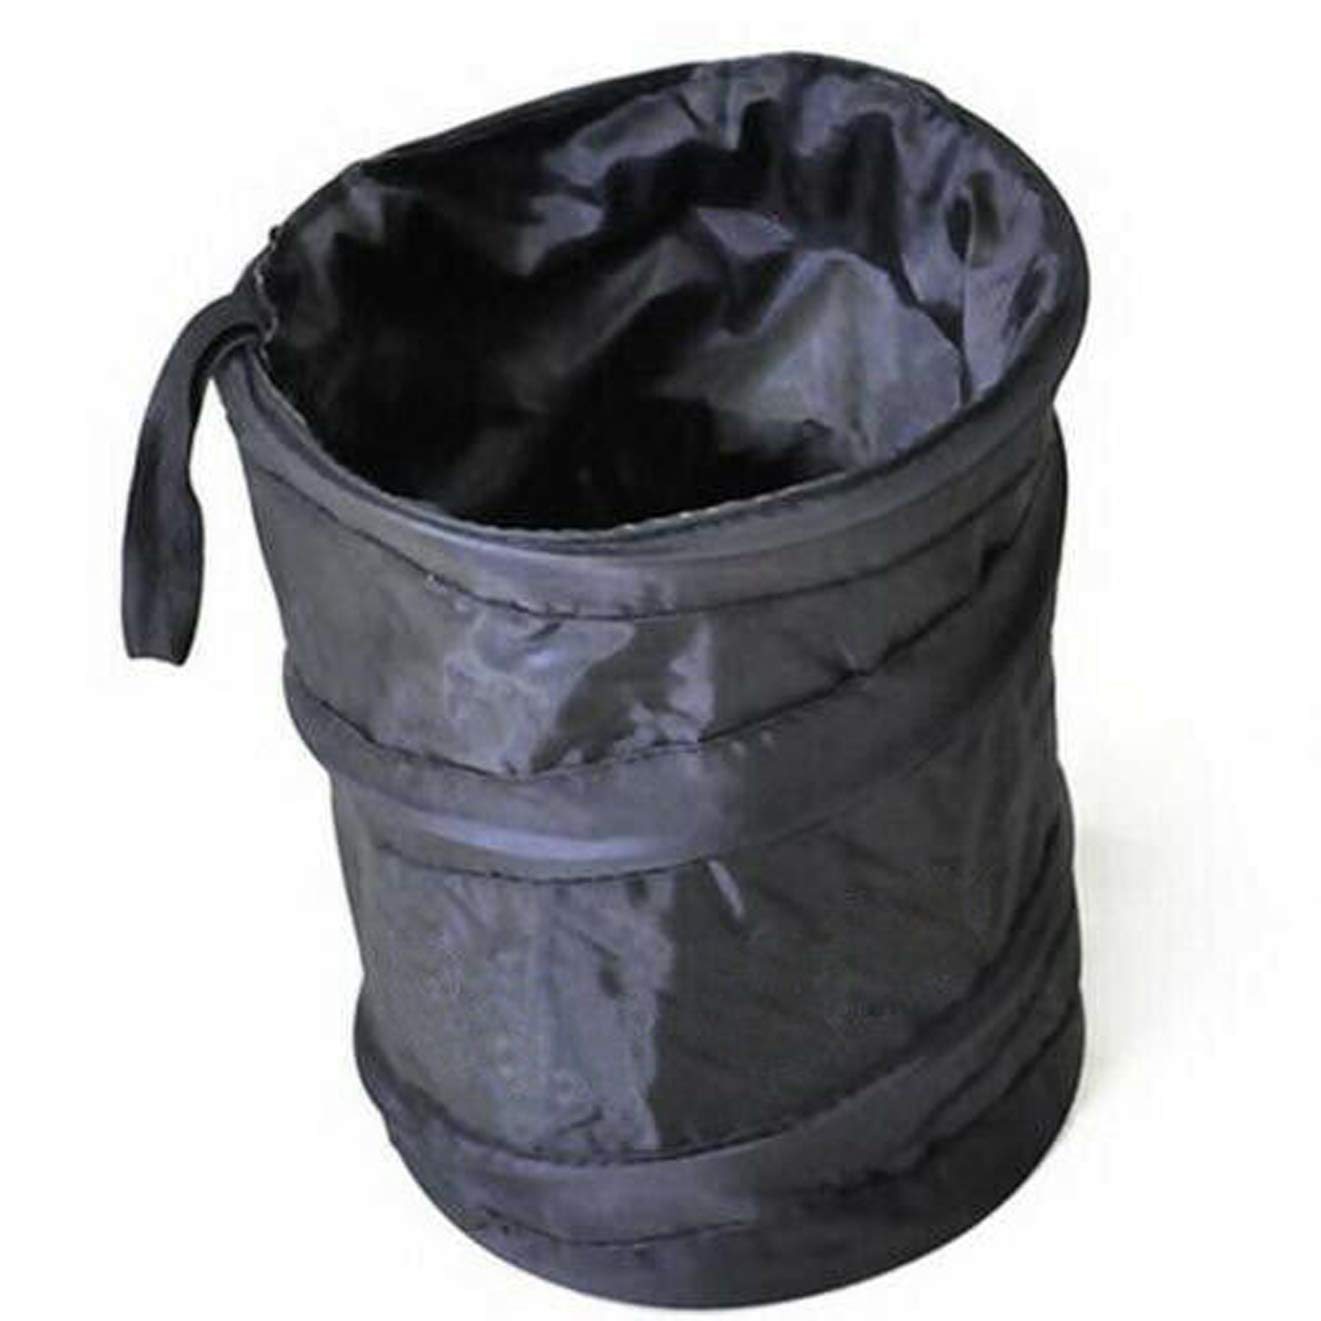 Collapsible Mini Bin for Car Water Resistant Black Litter Waste Rubbish Trash Bag Boat Auto Rv Pop Up Garbage Black, ONE Size